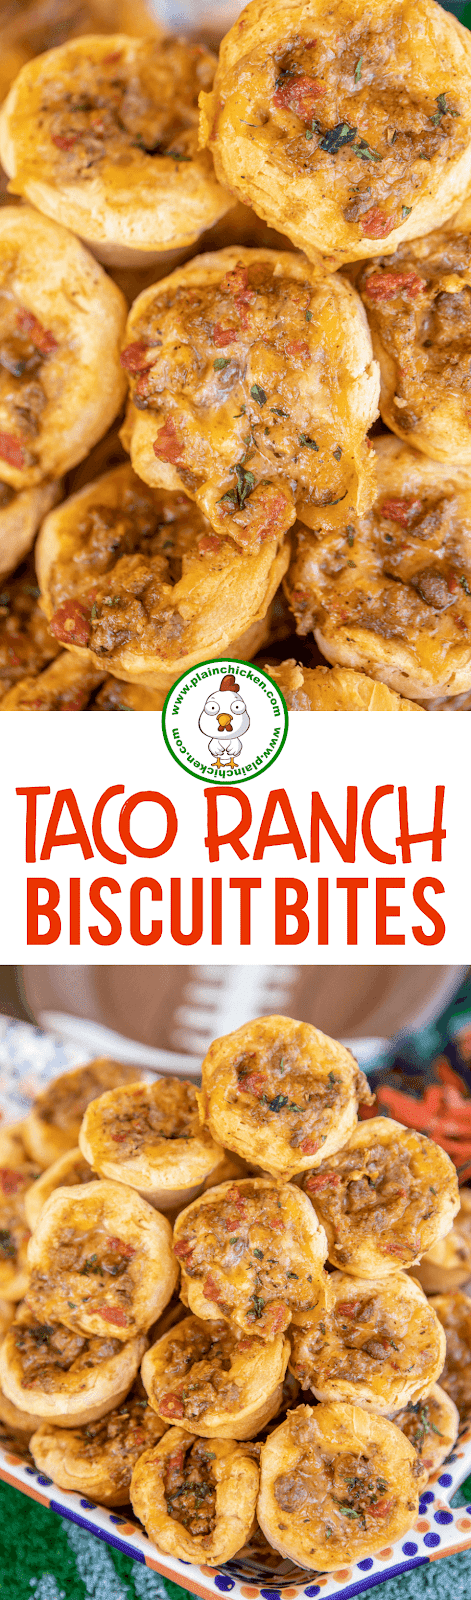 collage of 2 photos of taco ranch biscuit bites